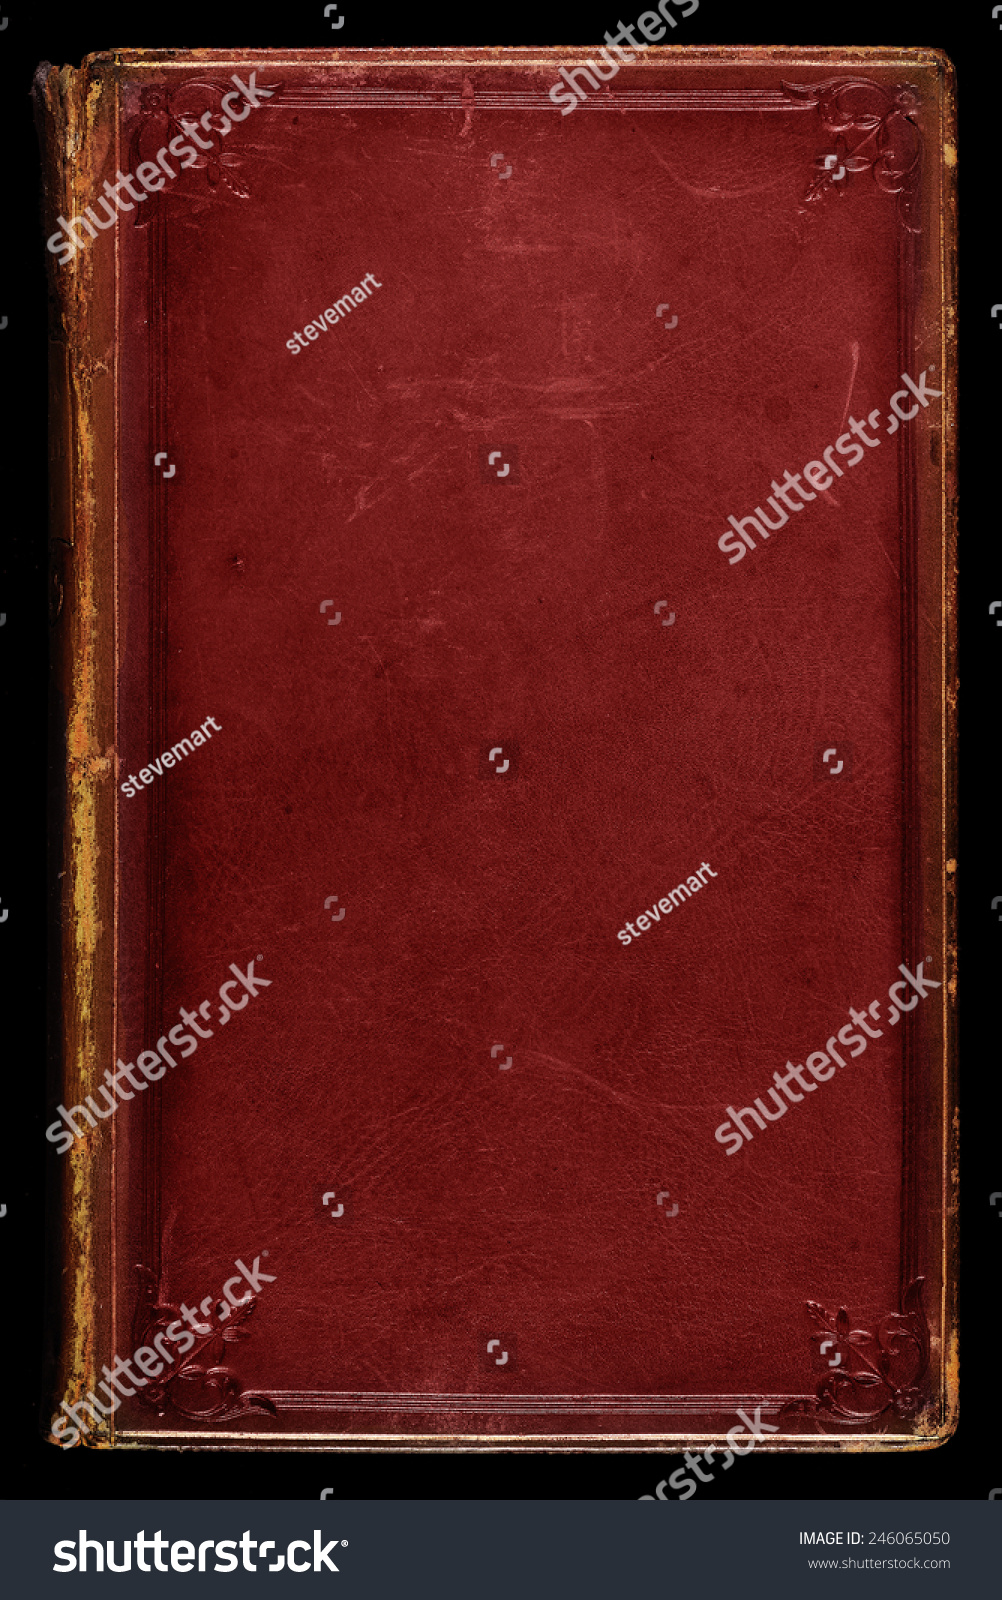 Antique Leather Book Cover Texture : Antique red leather book cover textured with age stains